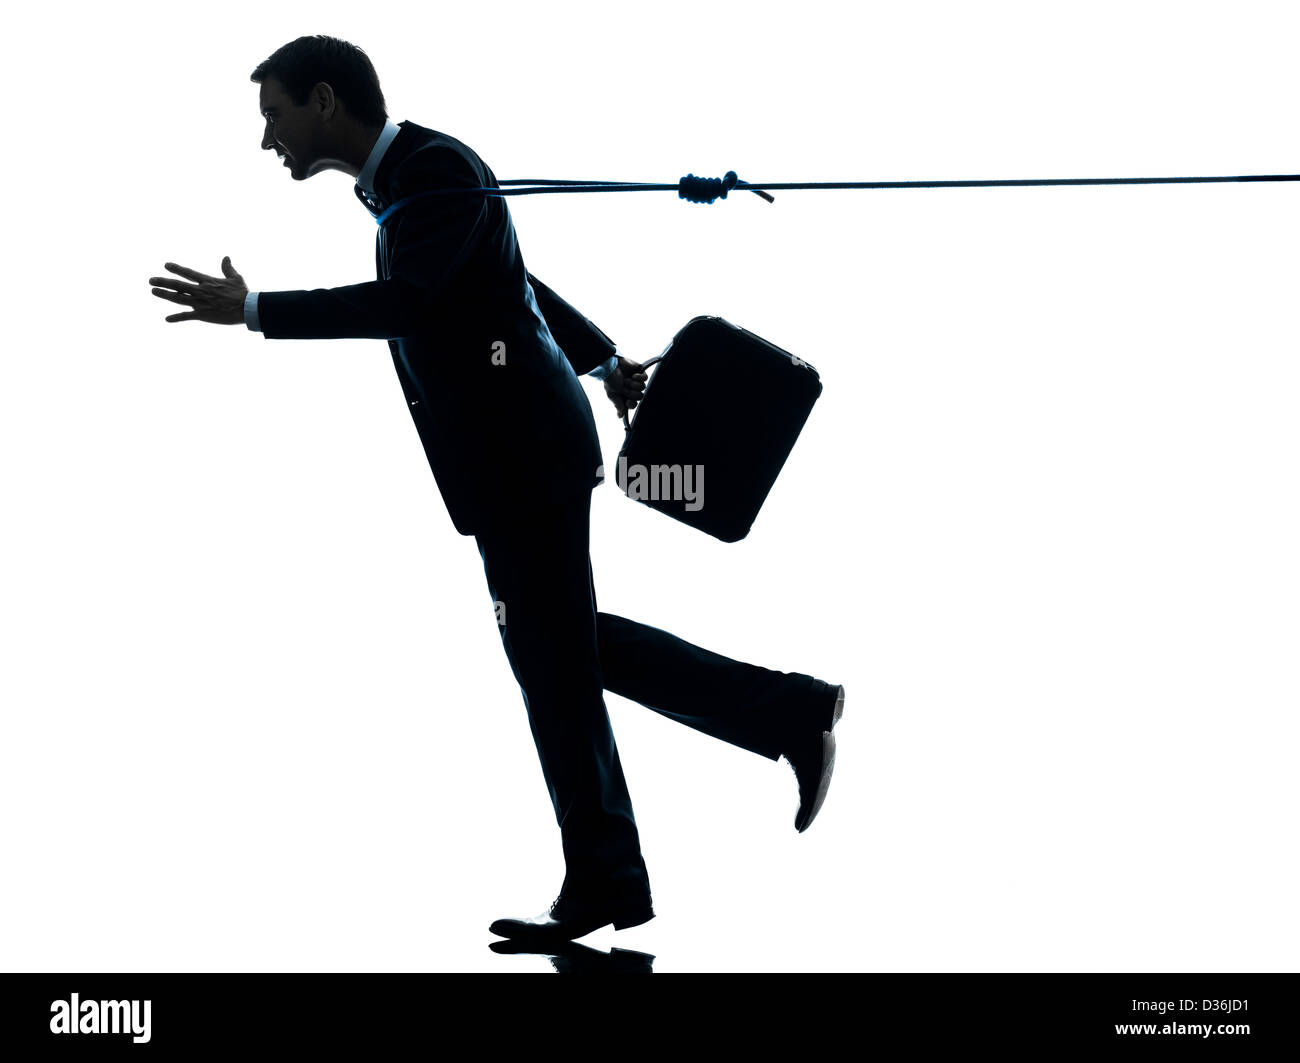 one  business man catched by lasso rope in silhouette studio isolated on white background - Stock Image